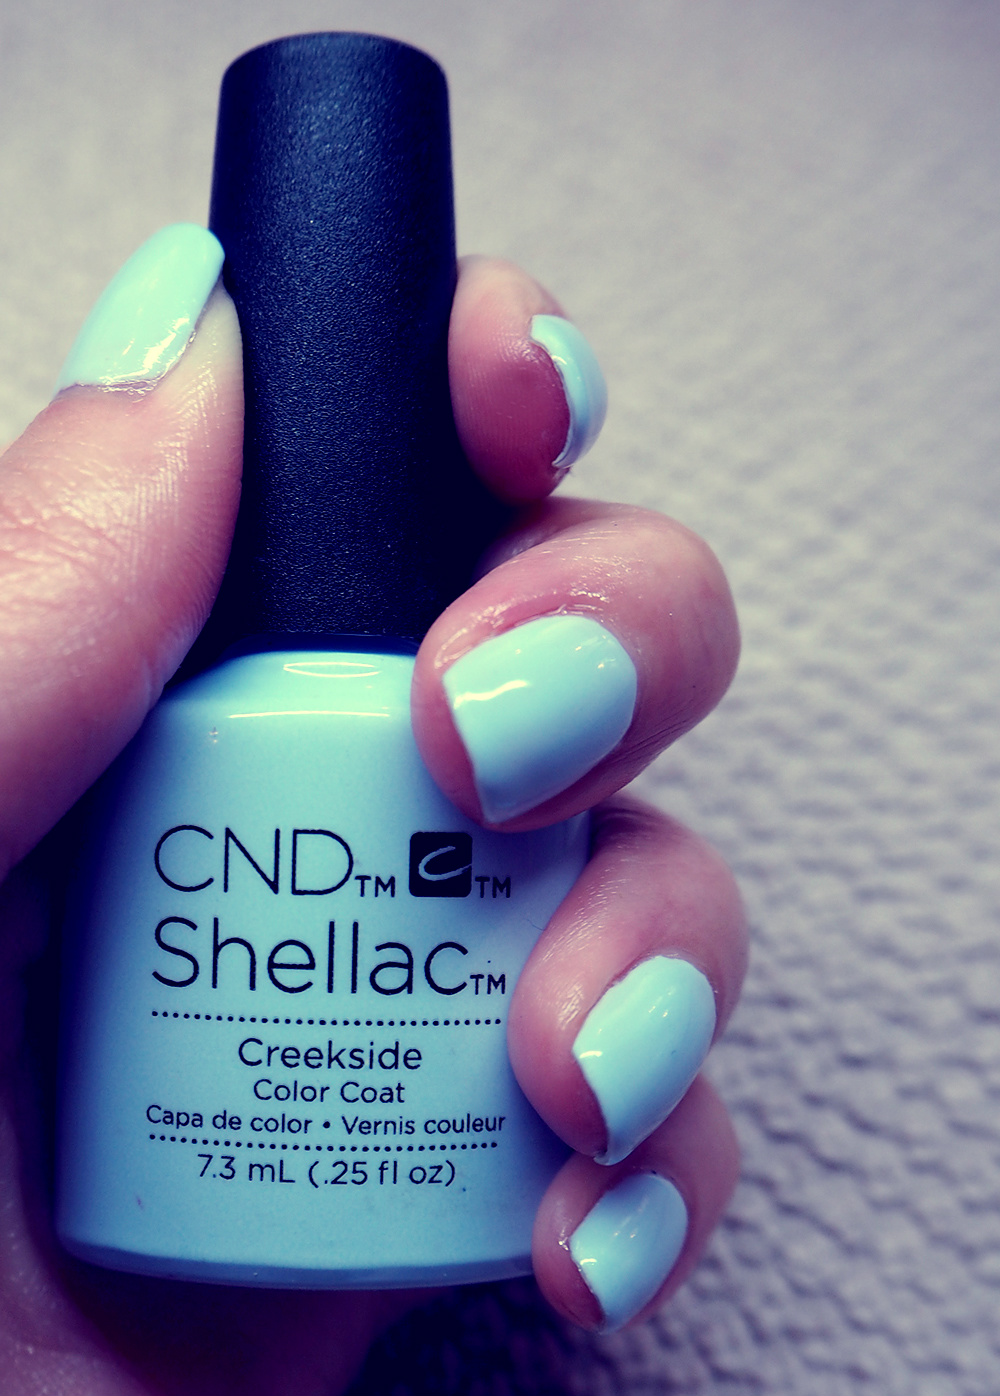 Blue Serenity nails by Nailfix : Vintage Guide by Joicy Muniz